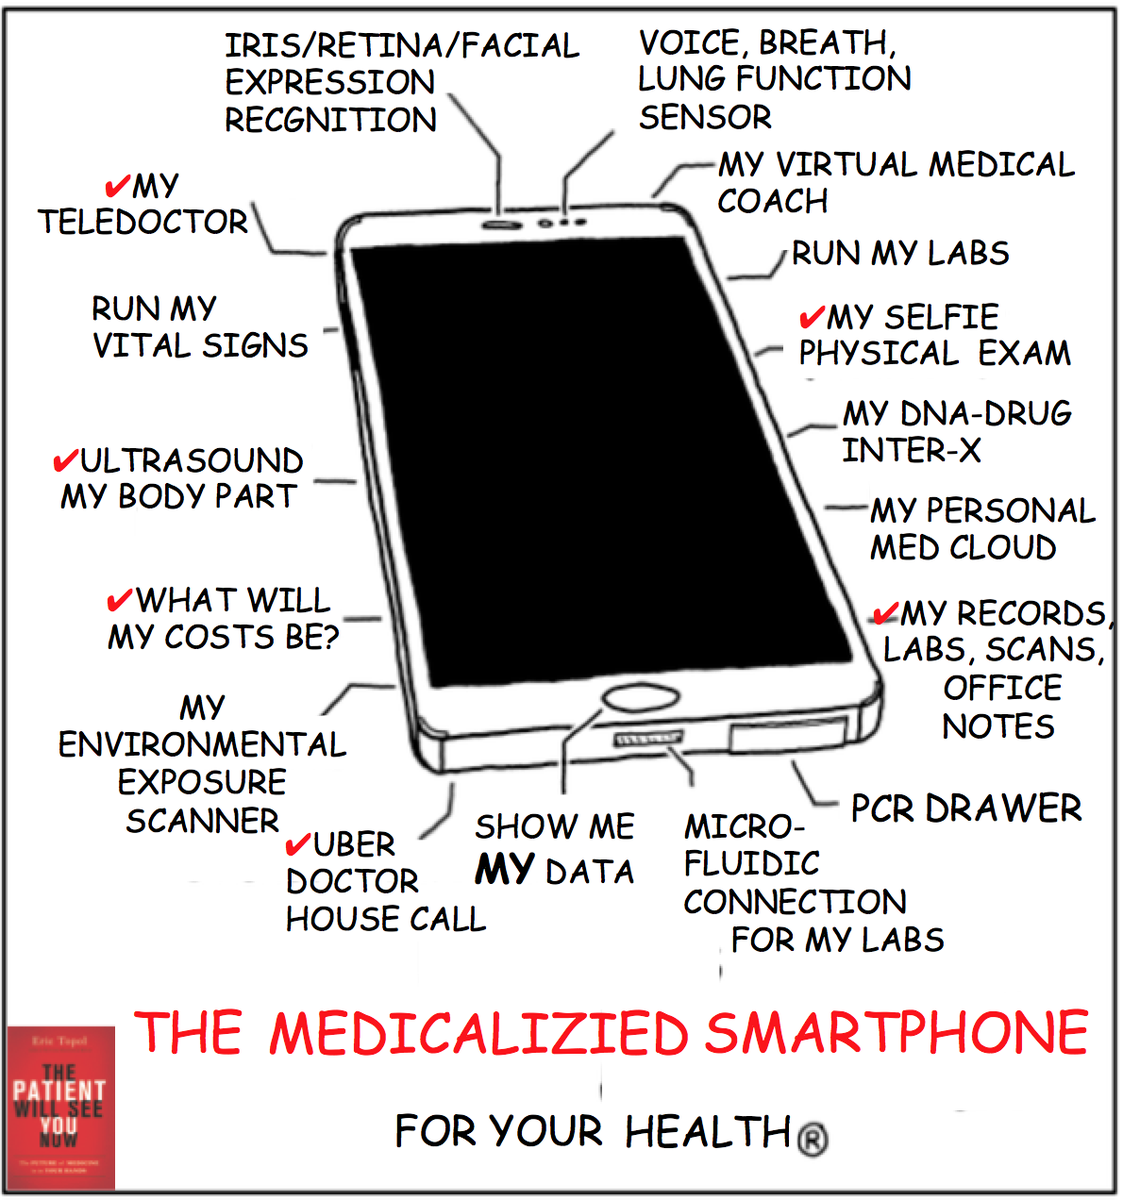 The medicalized smartphone is coming along  ✔=done; the rest are in progress #PWSYN https://t.co/emQ3A896s8